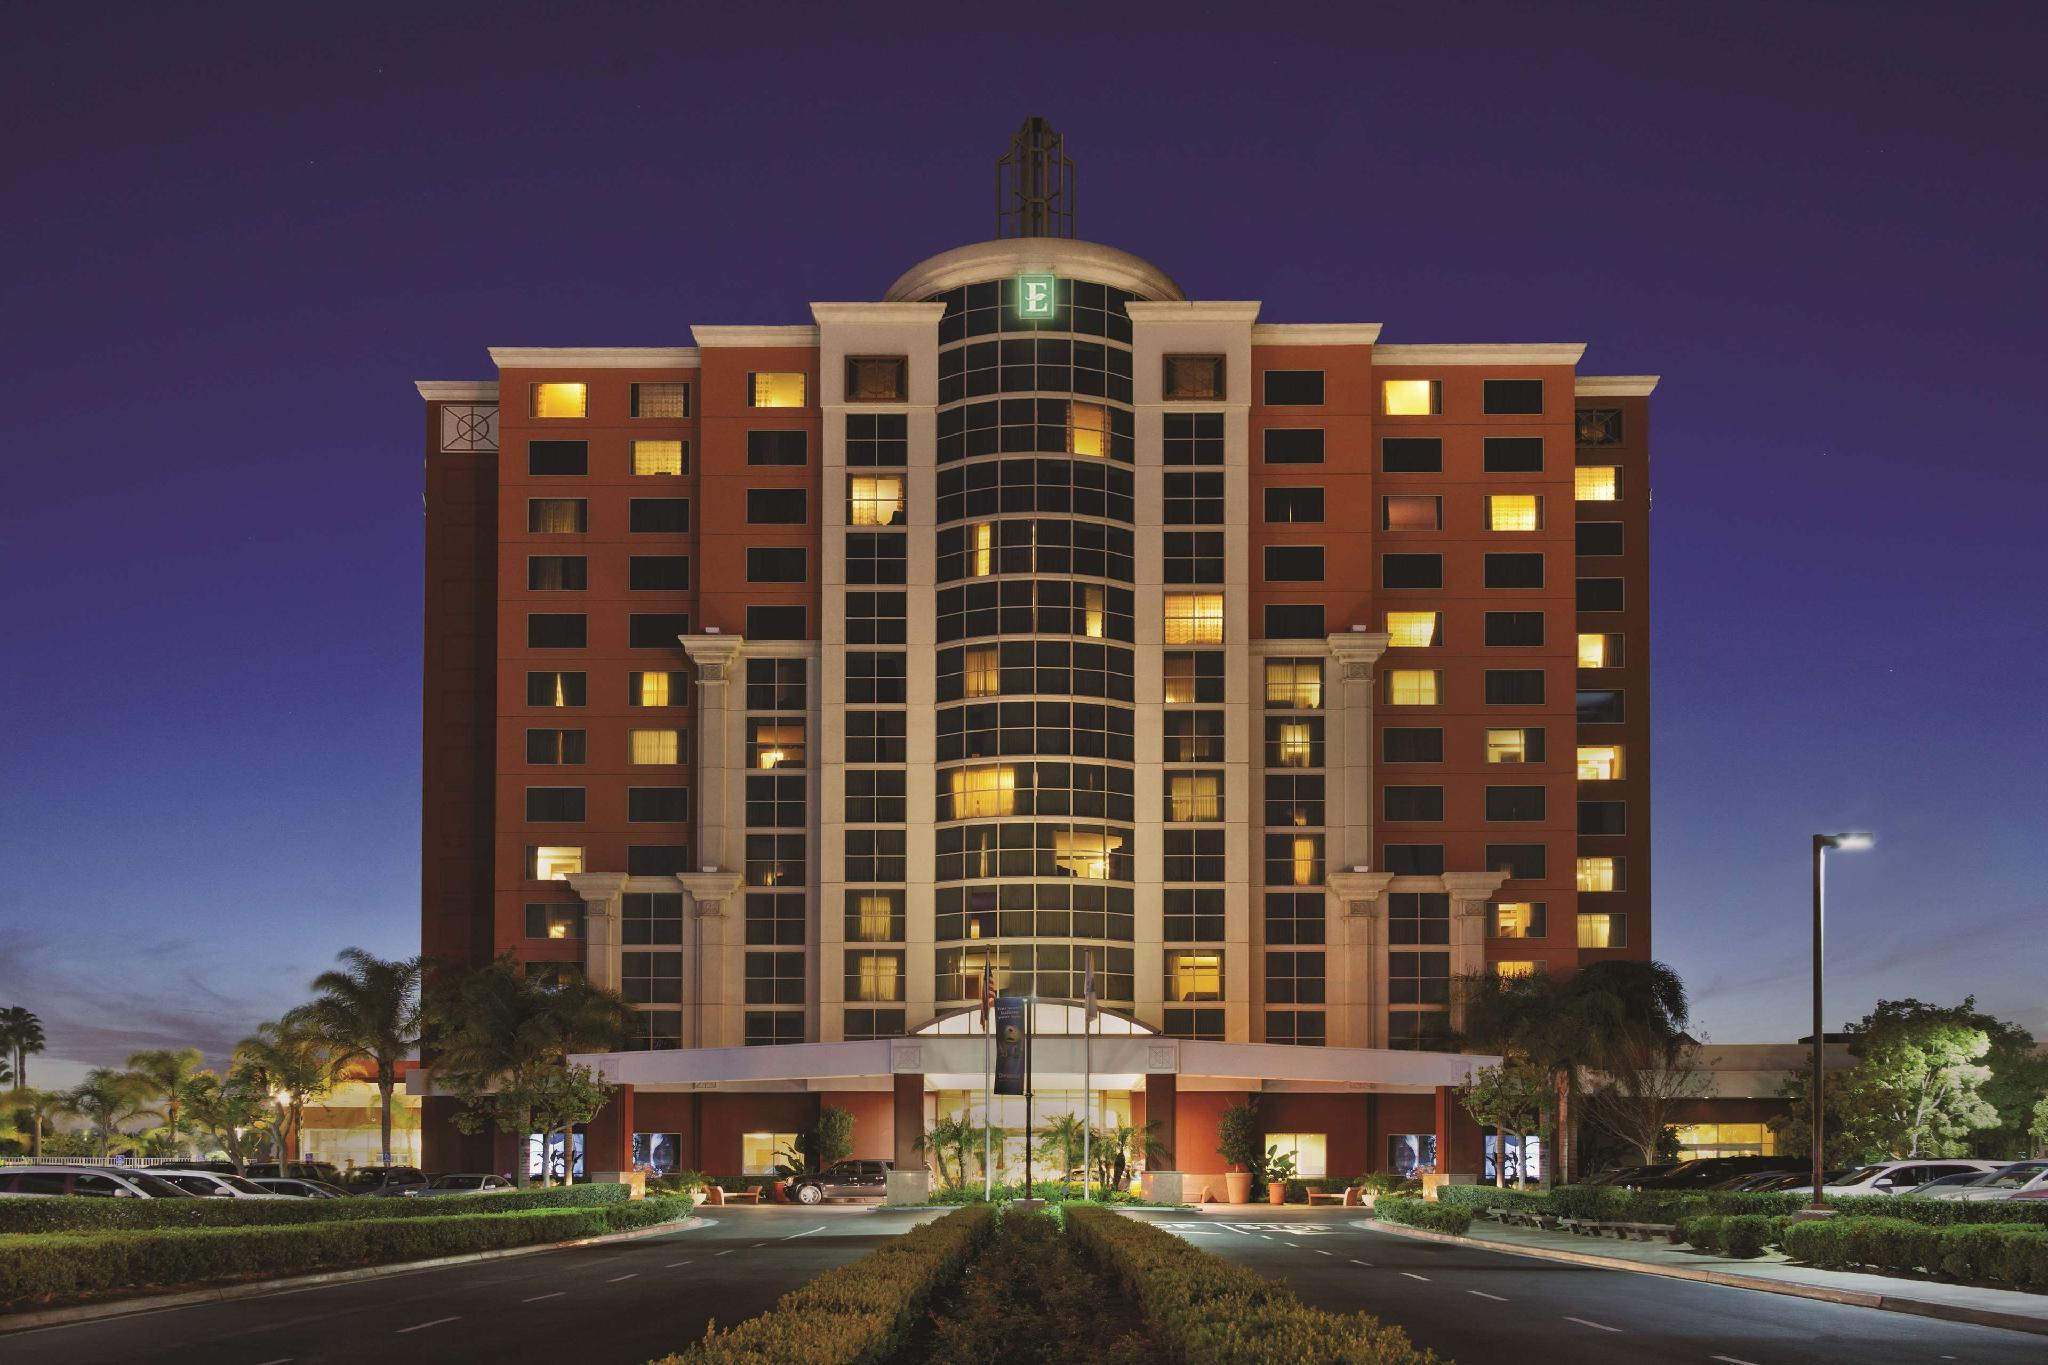 Embassy Suites Anaheim South Hotel image